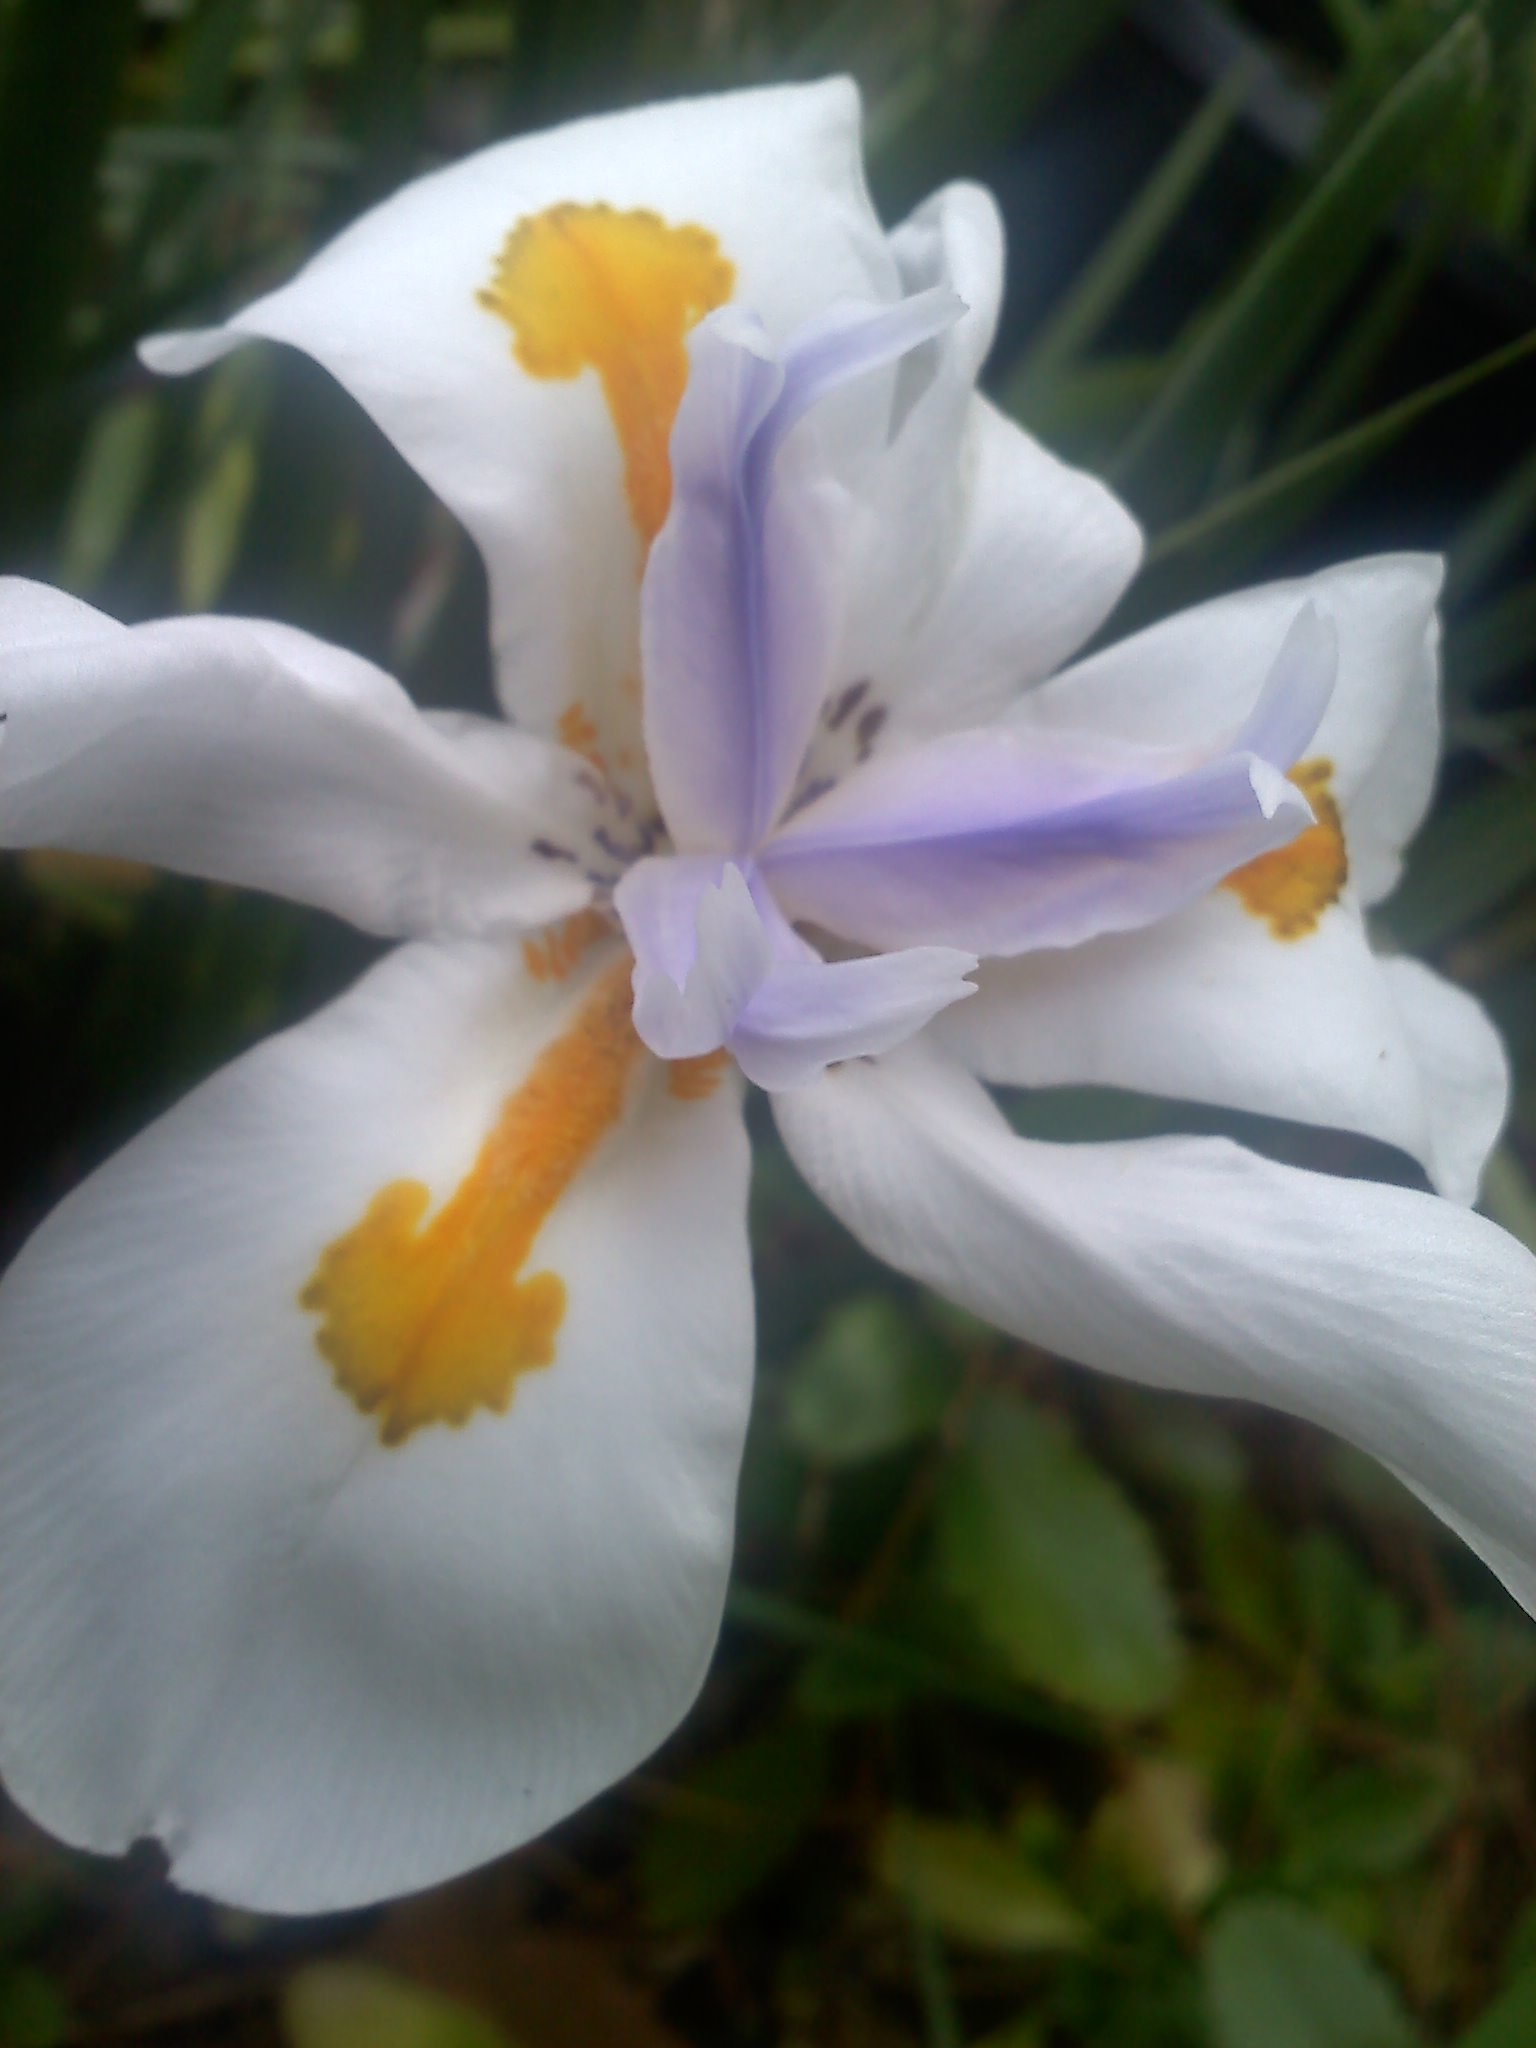 What is this beautiful white flower blooming after 5 years african iris fortnight lily izmirmasajfo